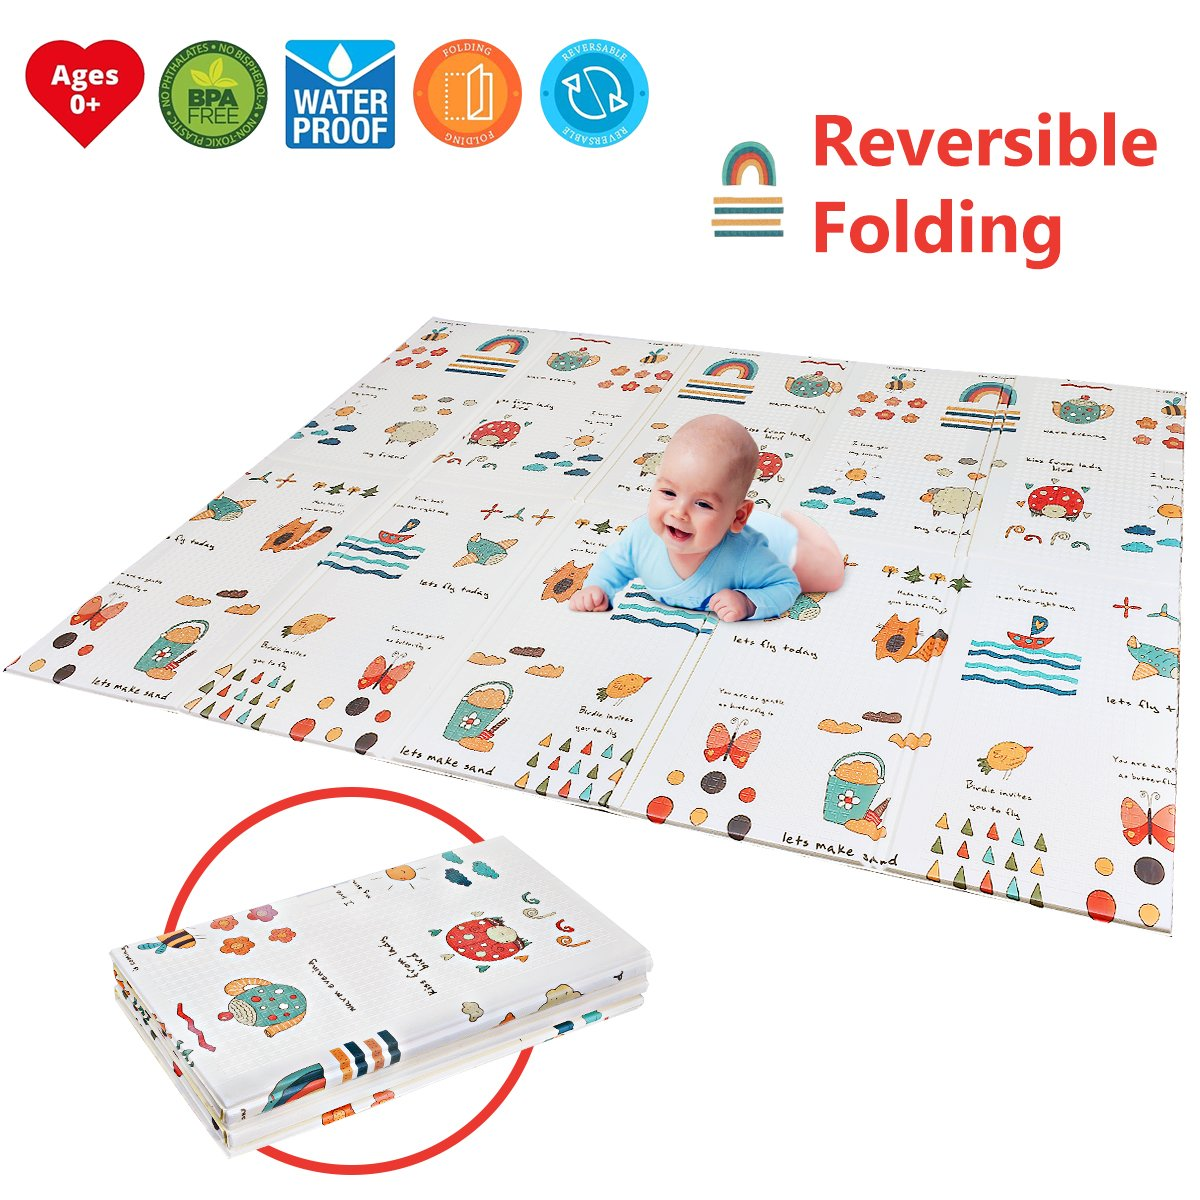 "Folding Kids Play Mat | Portable Baby Play Mat | BPA FREE Non Toxic 78.7"" x 59'' 0.4 Extra Large Reversible Foam Crawling Mat Toddlers Waterproof Non-Slip Picnic Outdoor Playroom"